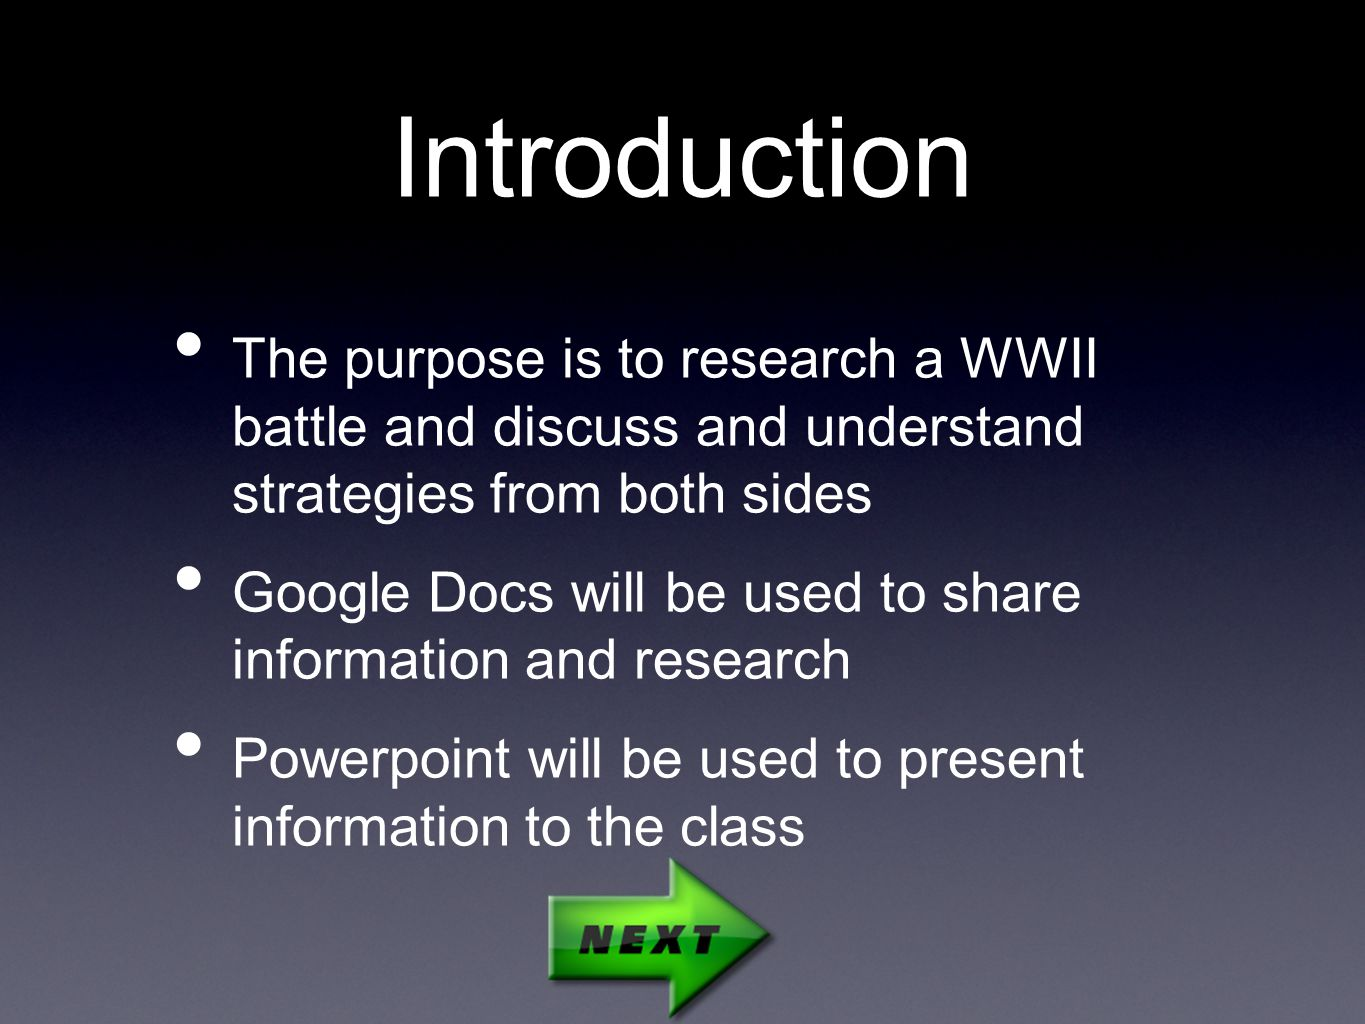 Introduction The purpose is to research a WWII battle and discuss and understand strategies from both sides Google Docs will be used to share informat